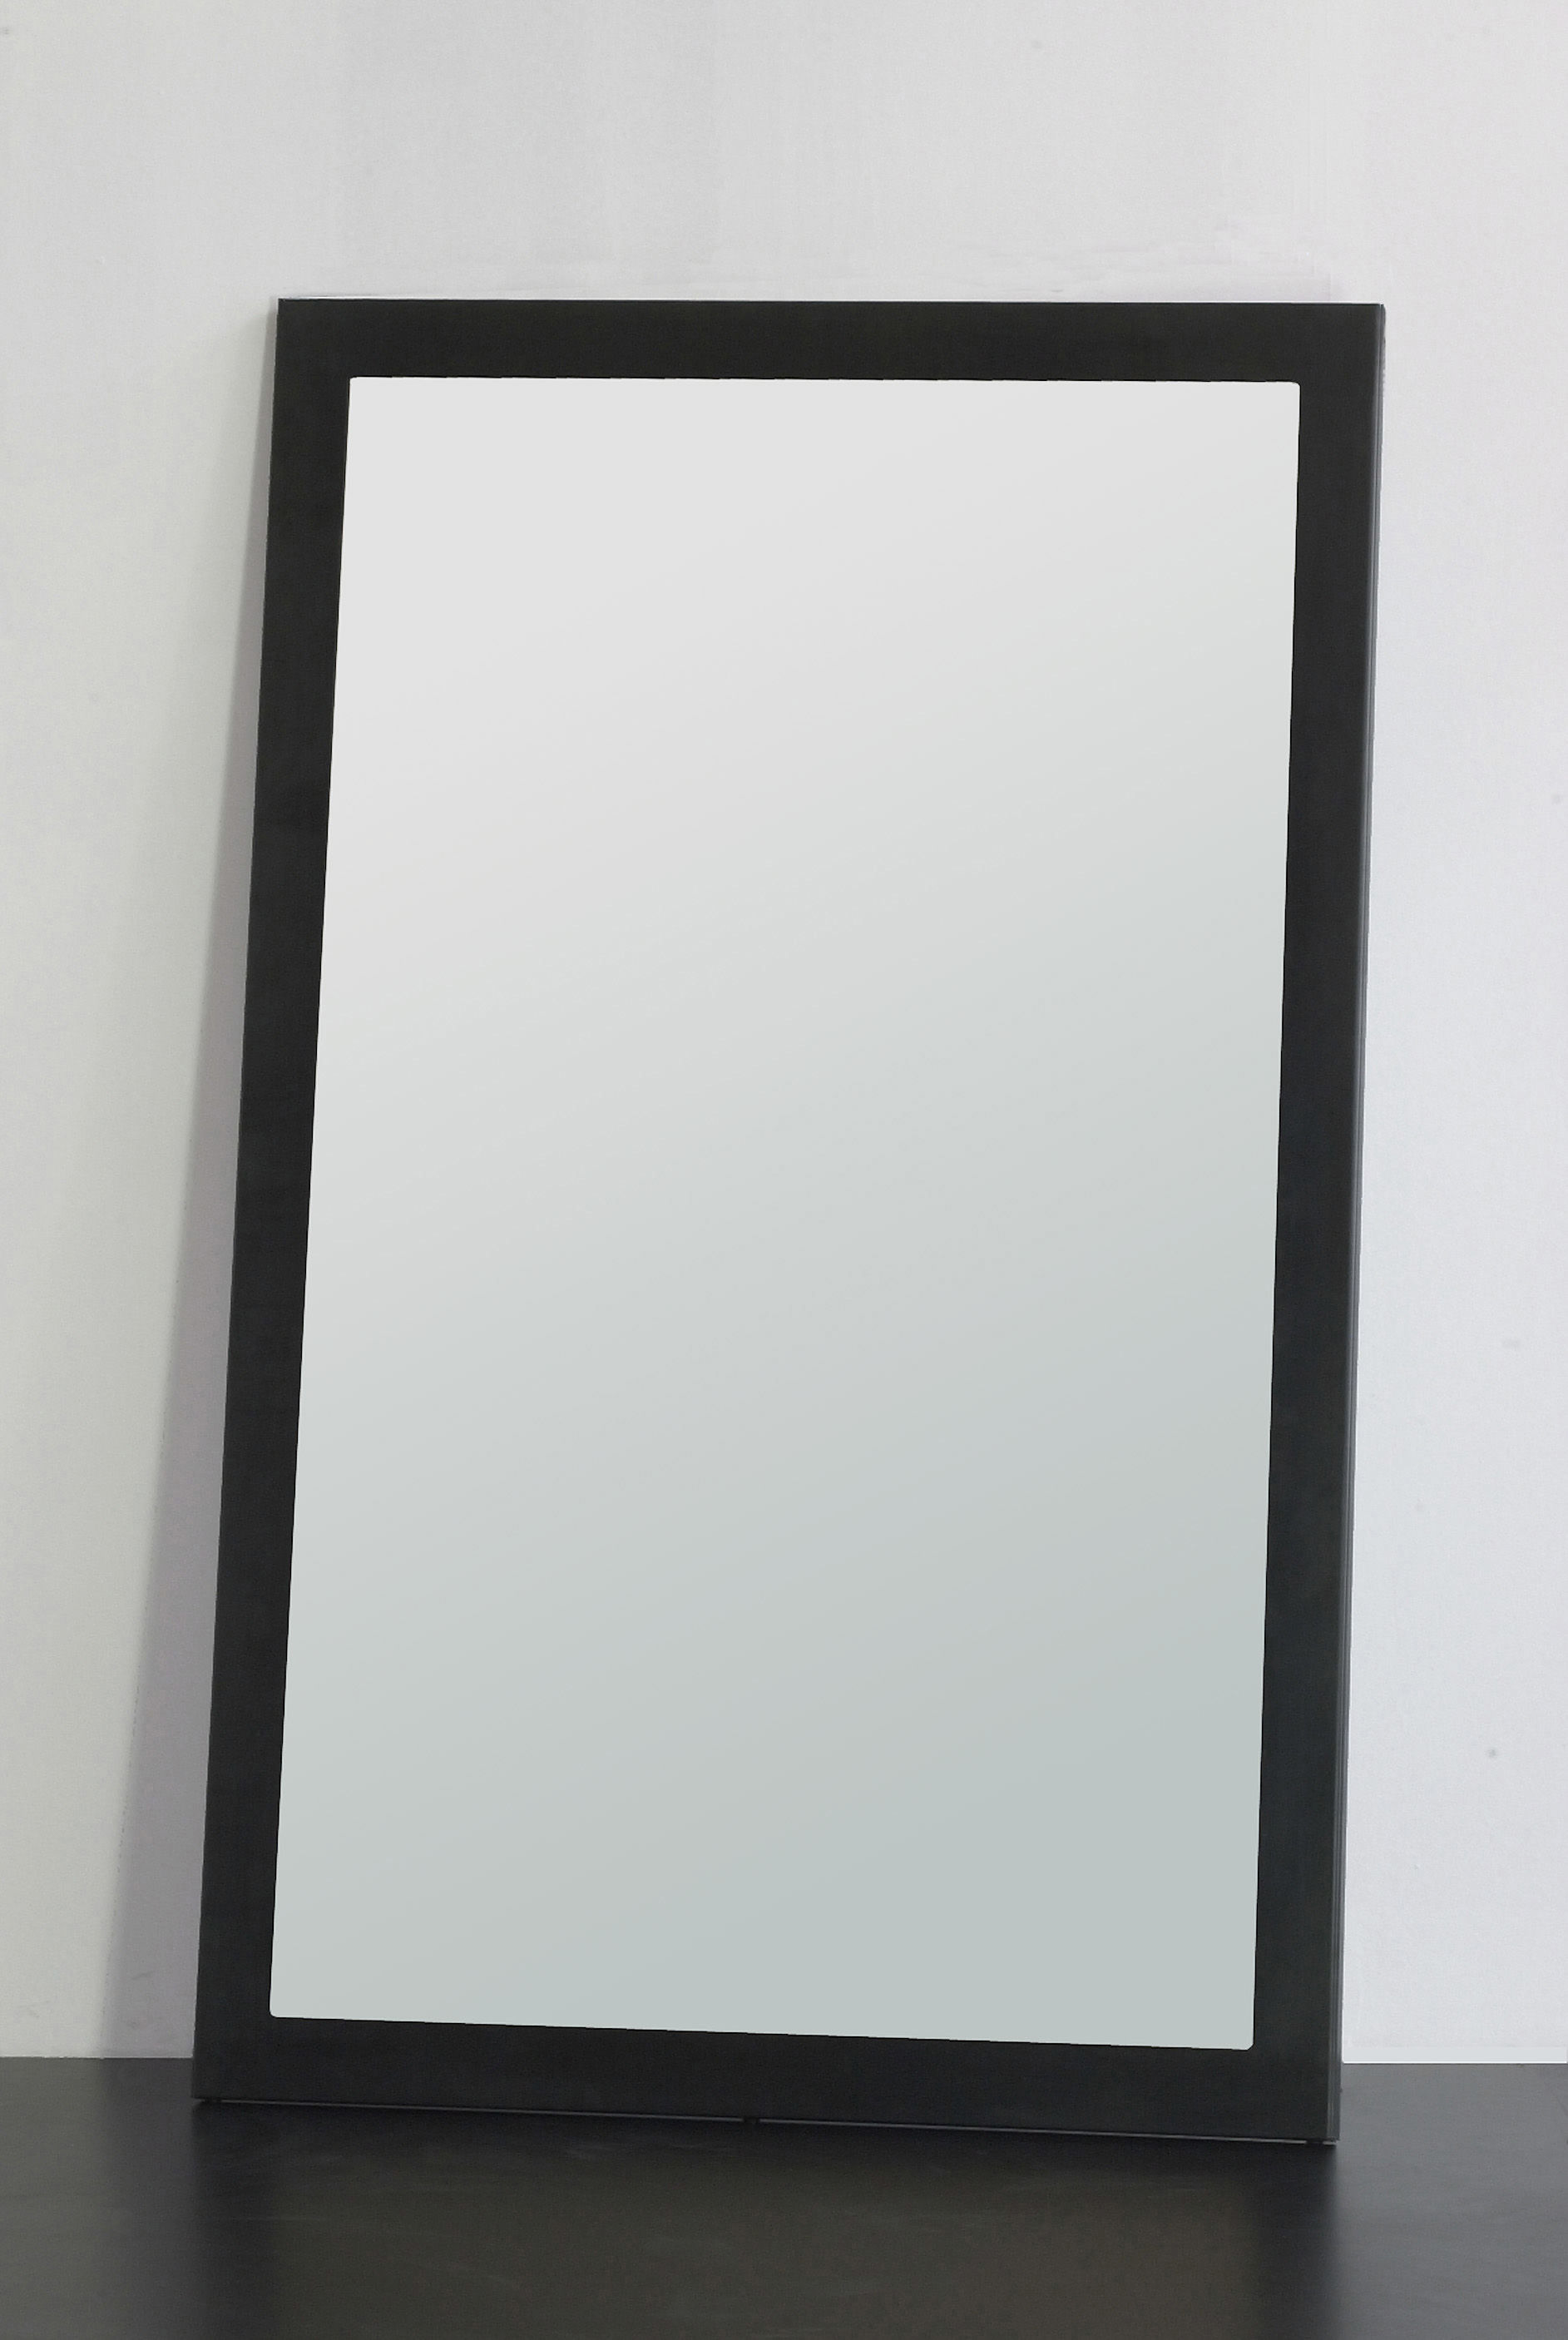 Big frame mirror 210 x 130 cm by zeus for Large a frame